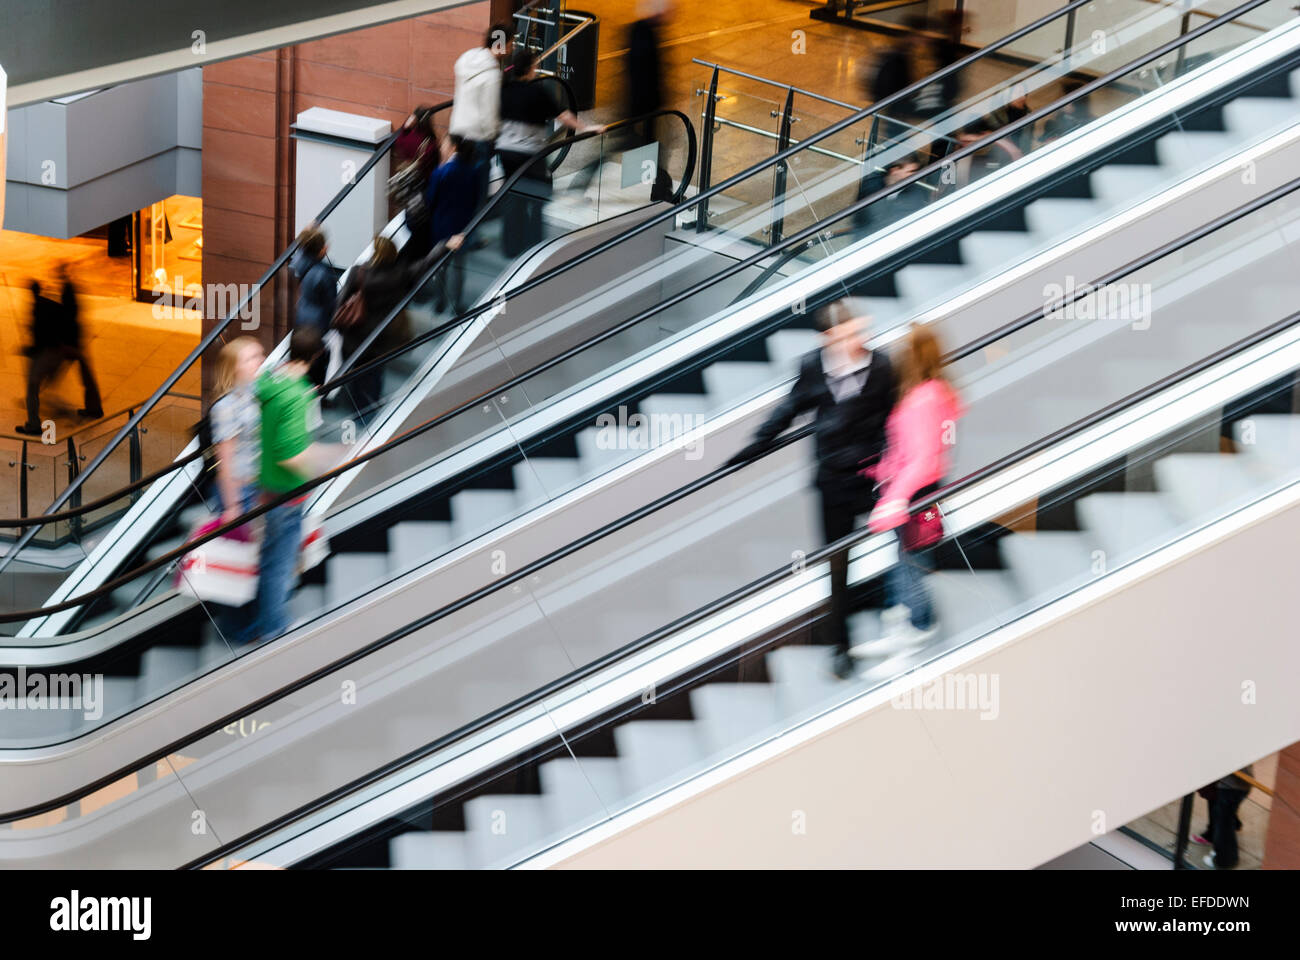 Shoppers Take The Escalators In A Shopping Centre/mall.   Stock Image